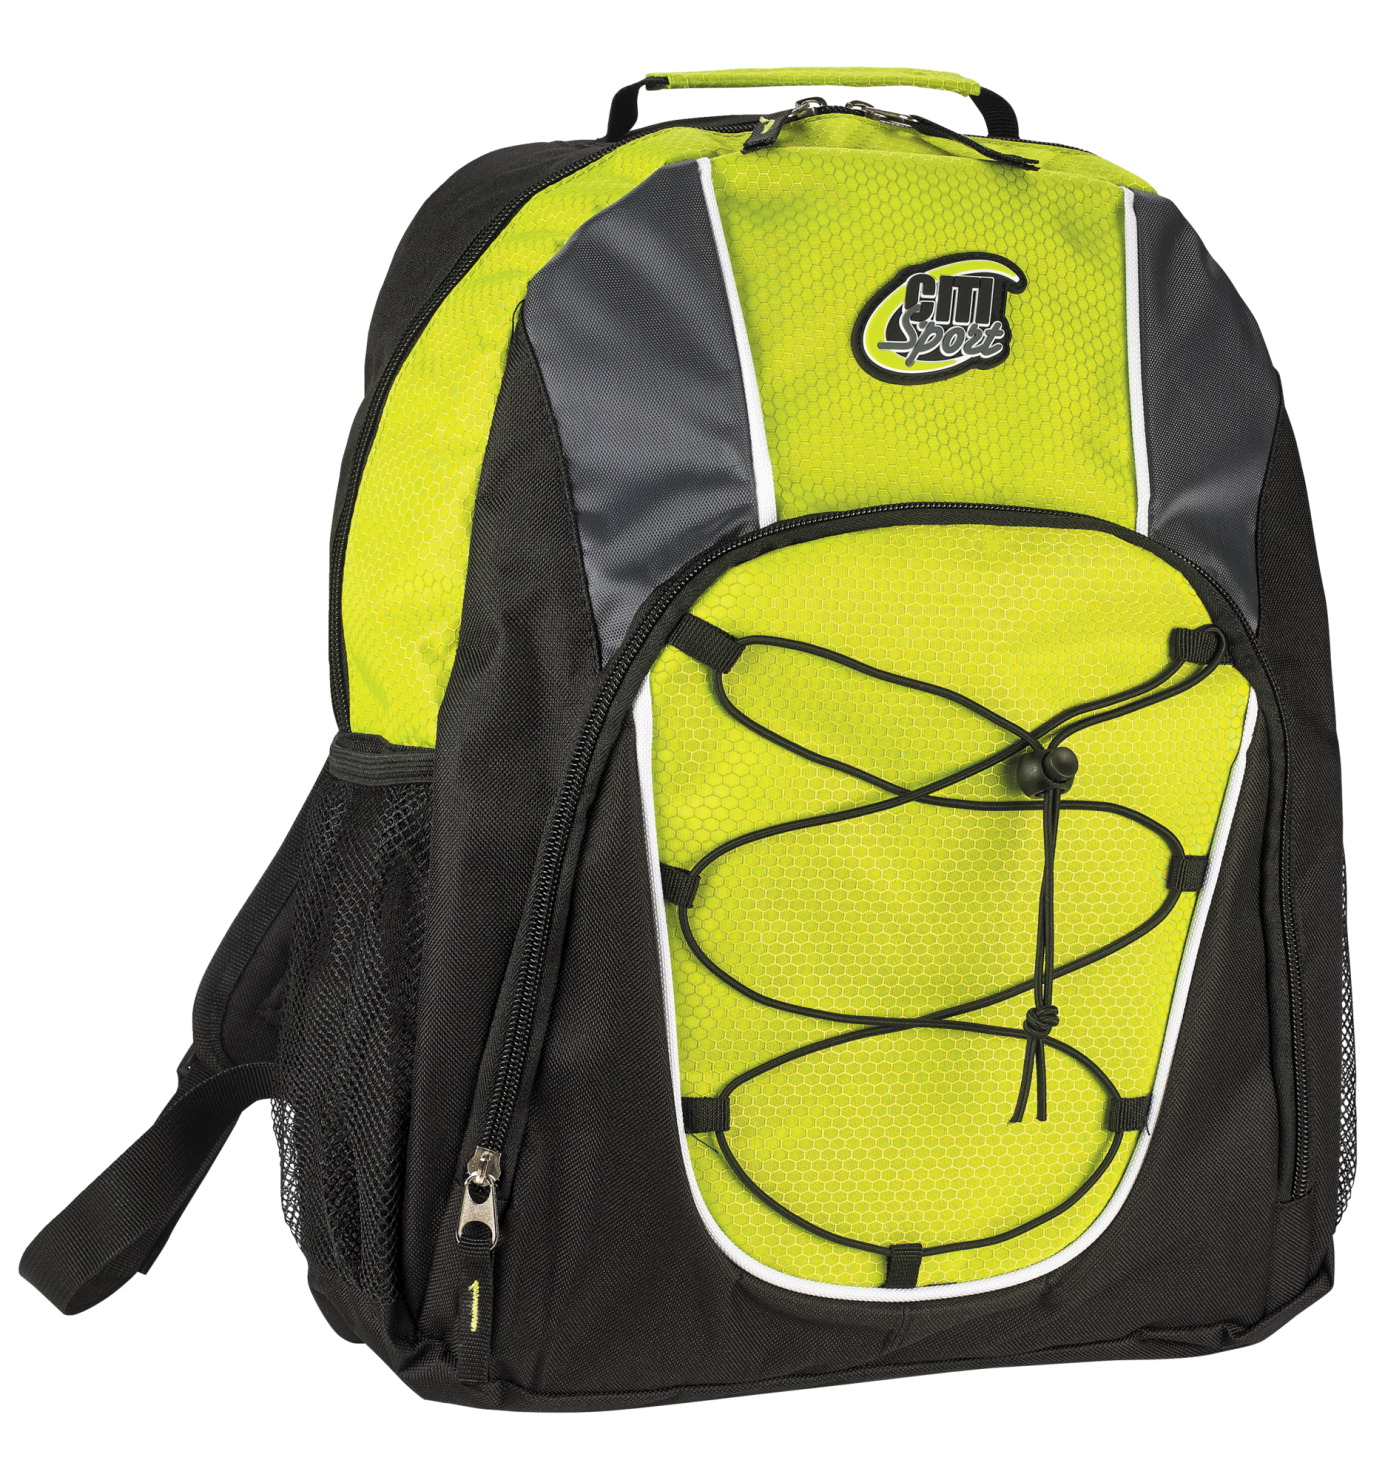 Large Backpack with Bungee Cord, Lime and Black, 17 x 13 x 6 inches